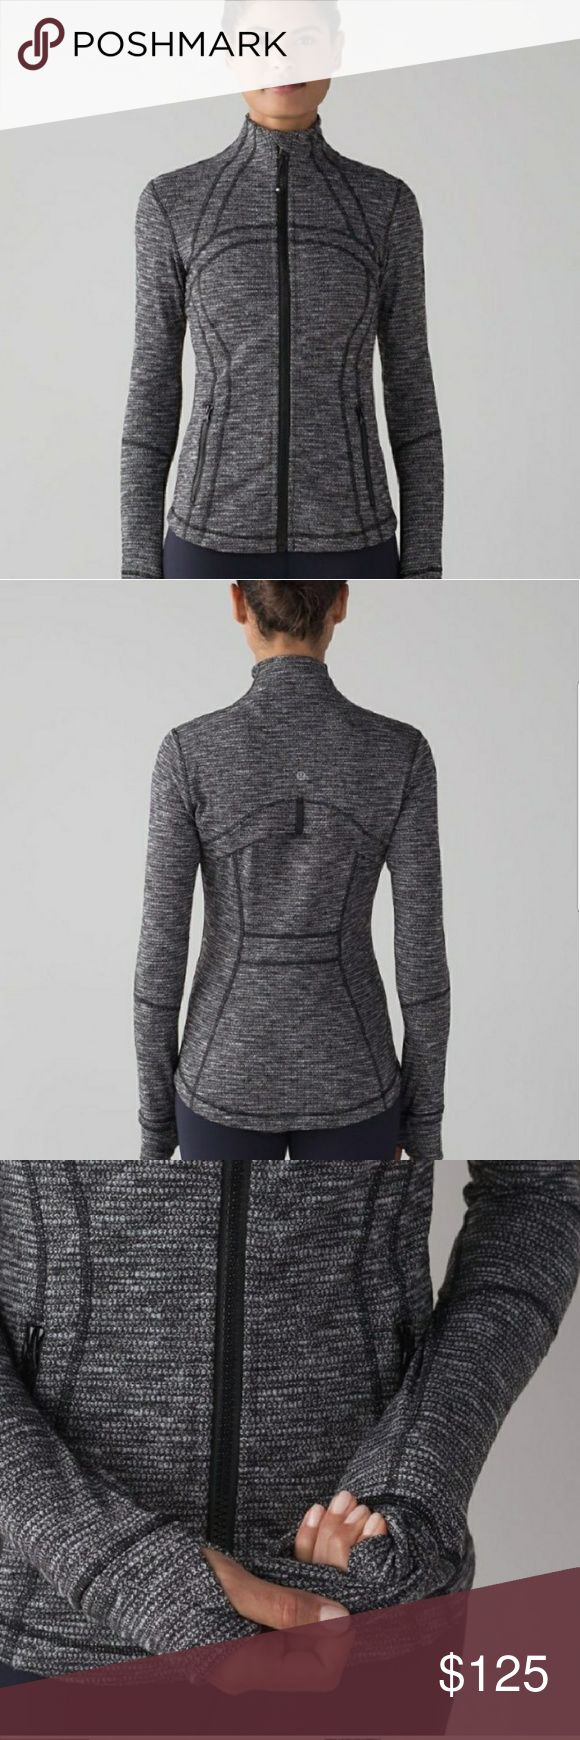 Lululemon Define Herringbone Black Heat Jacket 8 Super HOT Lulu Jacket & A Must Own Piece! Lululemon Athletica Define Jacket. Herringbone Black Heat. Size 8 with rip tag. Excellent preowned condition. No trades.  Lulu, swifty, tech, run, running, fitness, work out, gym, yoga, popular, Pilates, cycling lululemon athletica Jackets & Coats